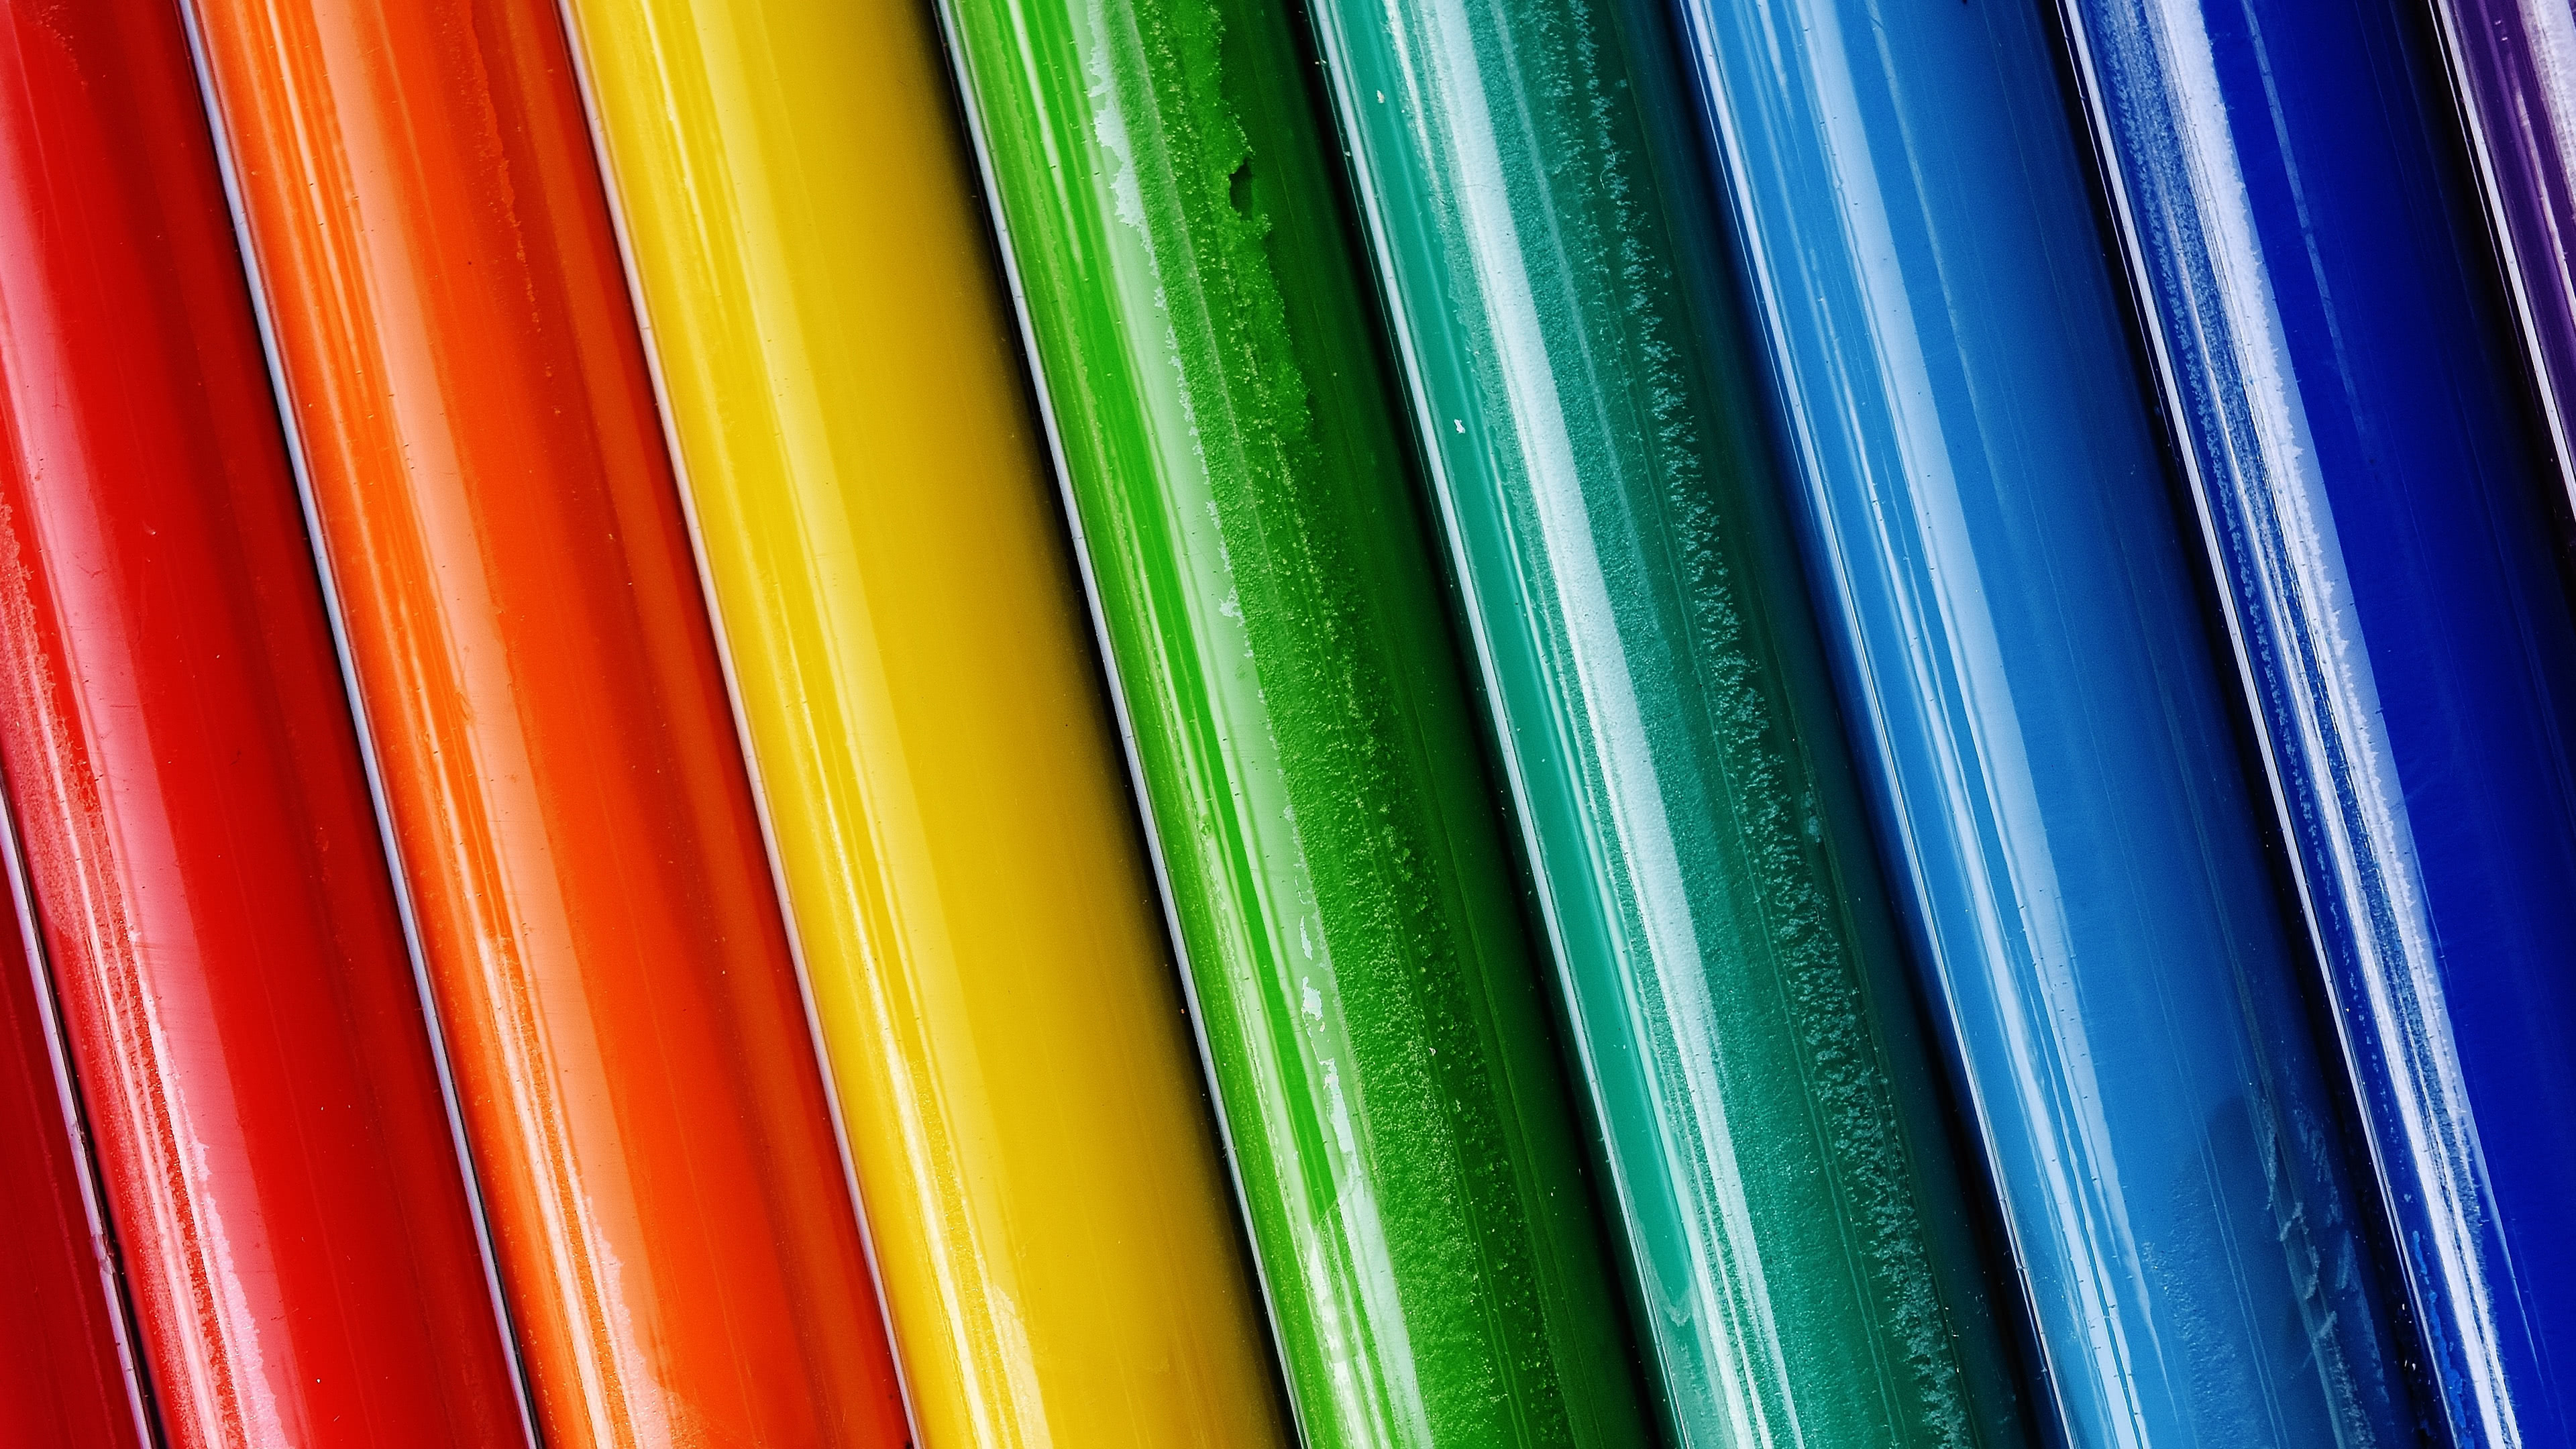 colorful tubes uhd 4k wallpaper